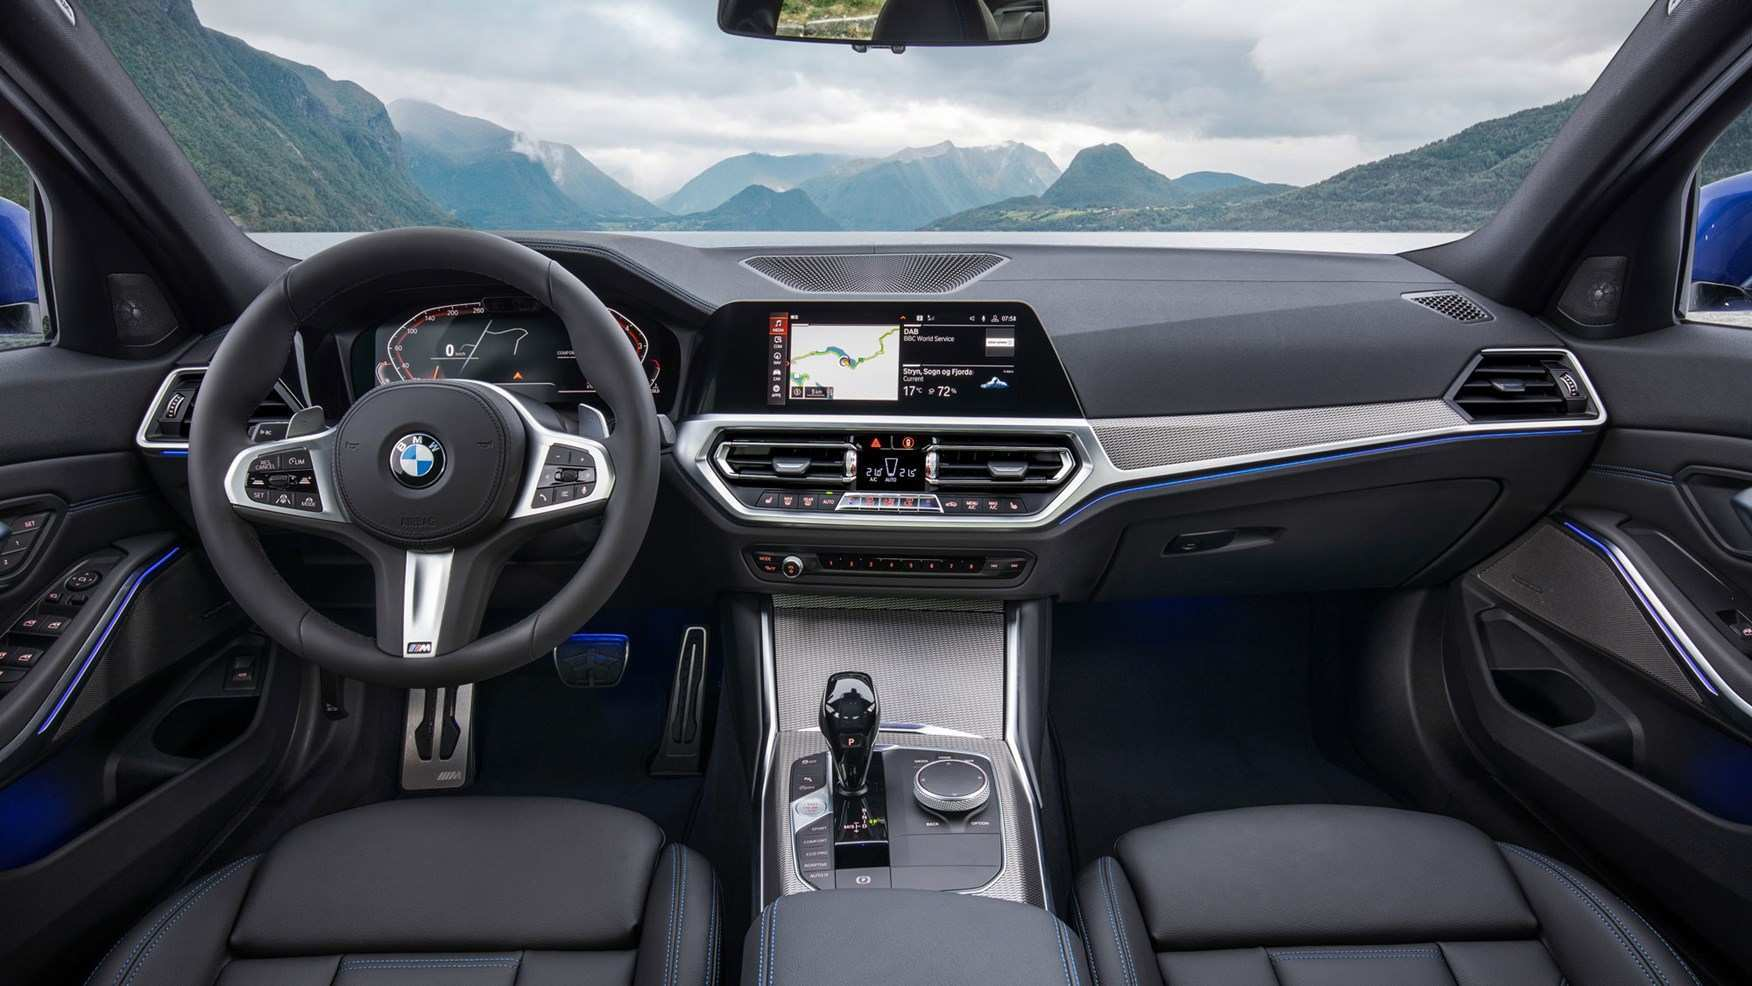 38 All New 2019 Bmw 3 Series Release Date Wallpaper